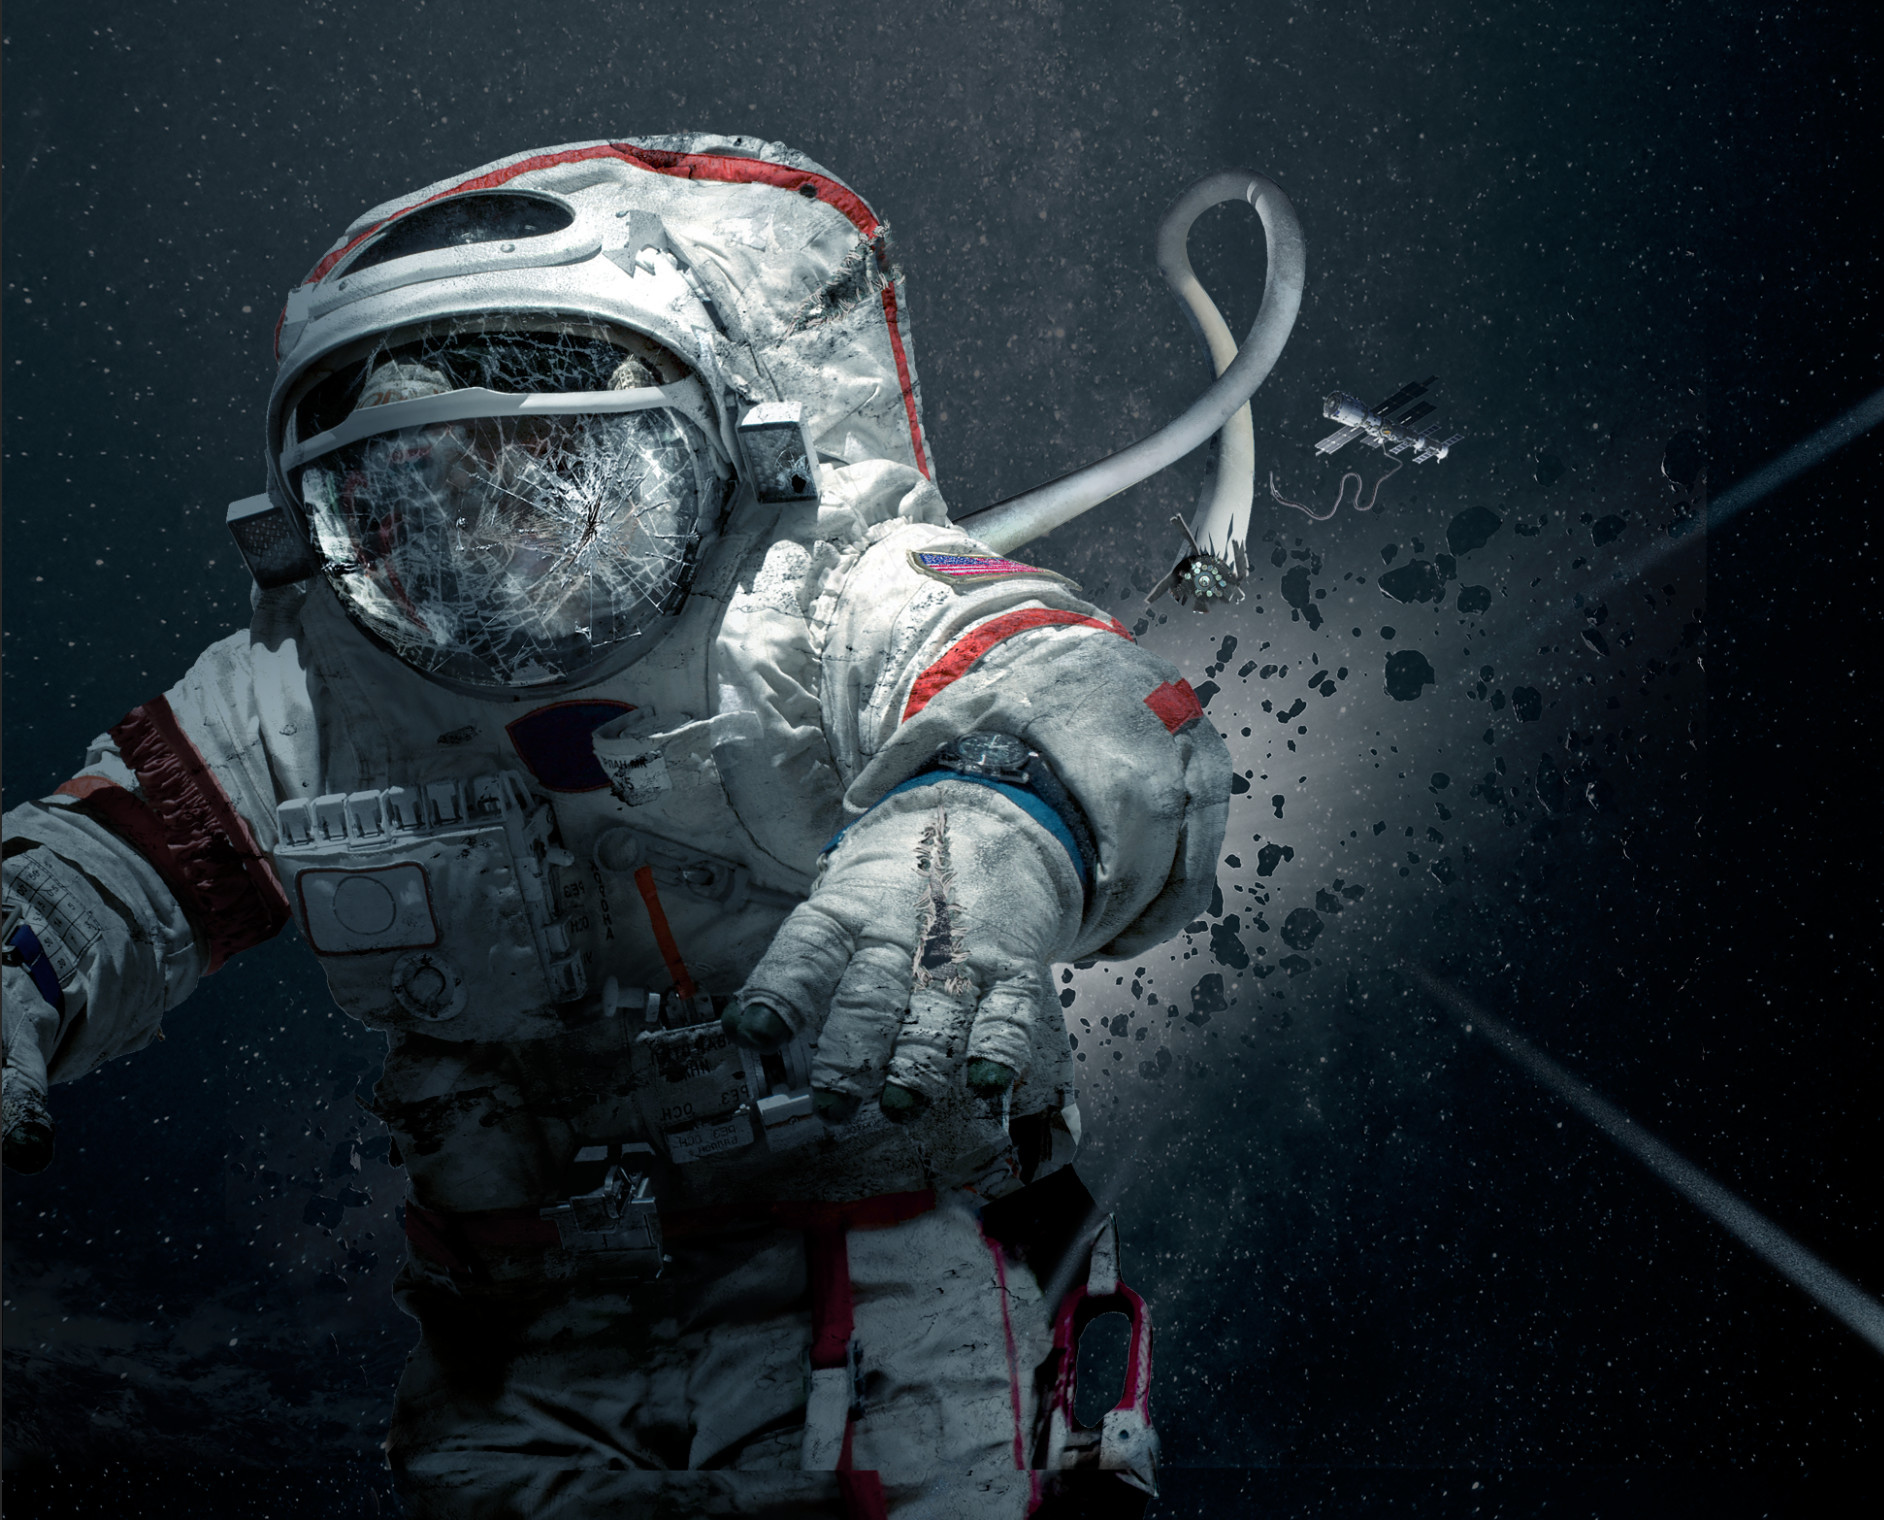 astronaut disappeared in space - photo #15